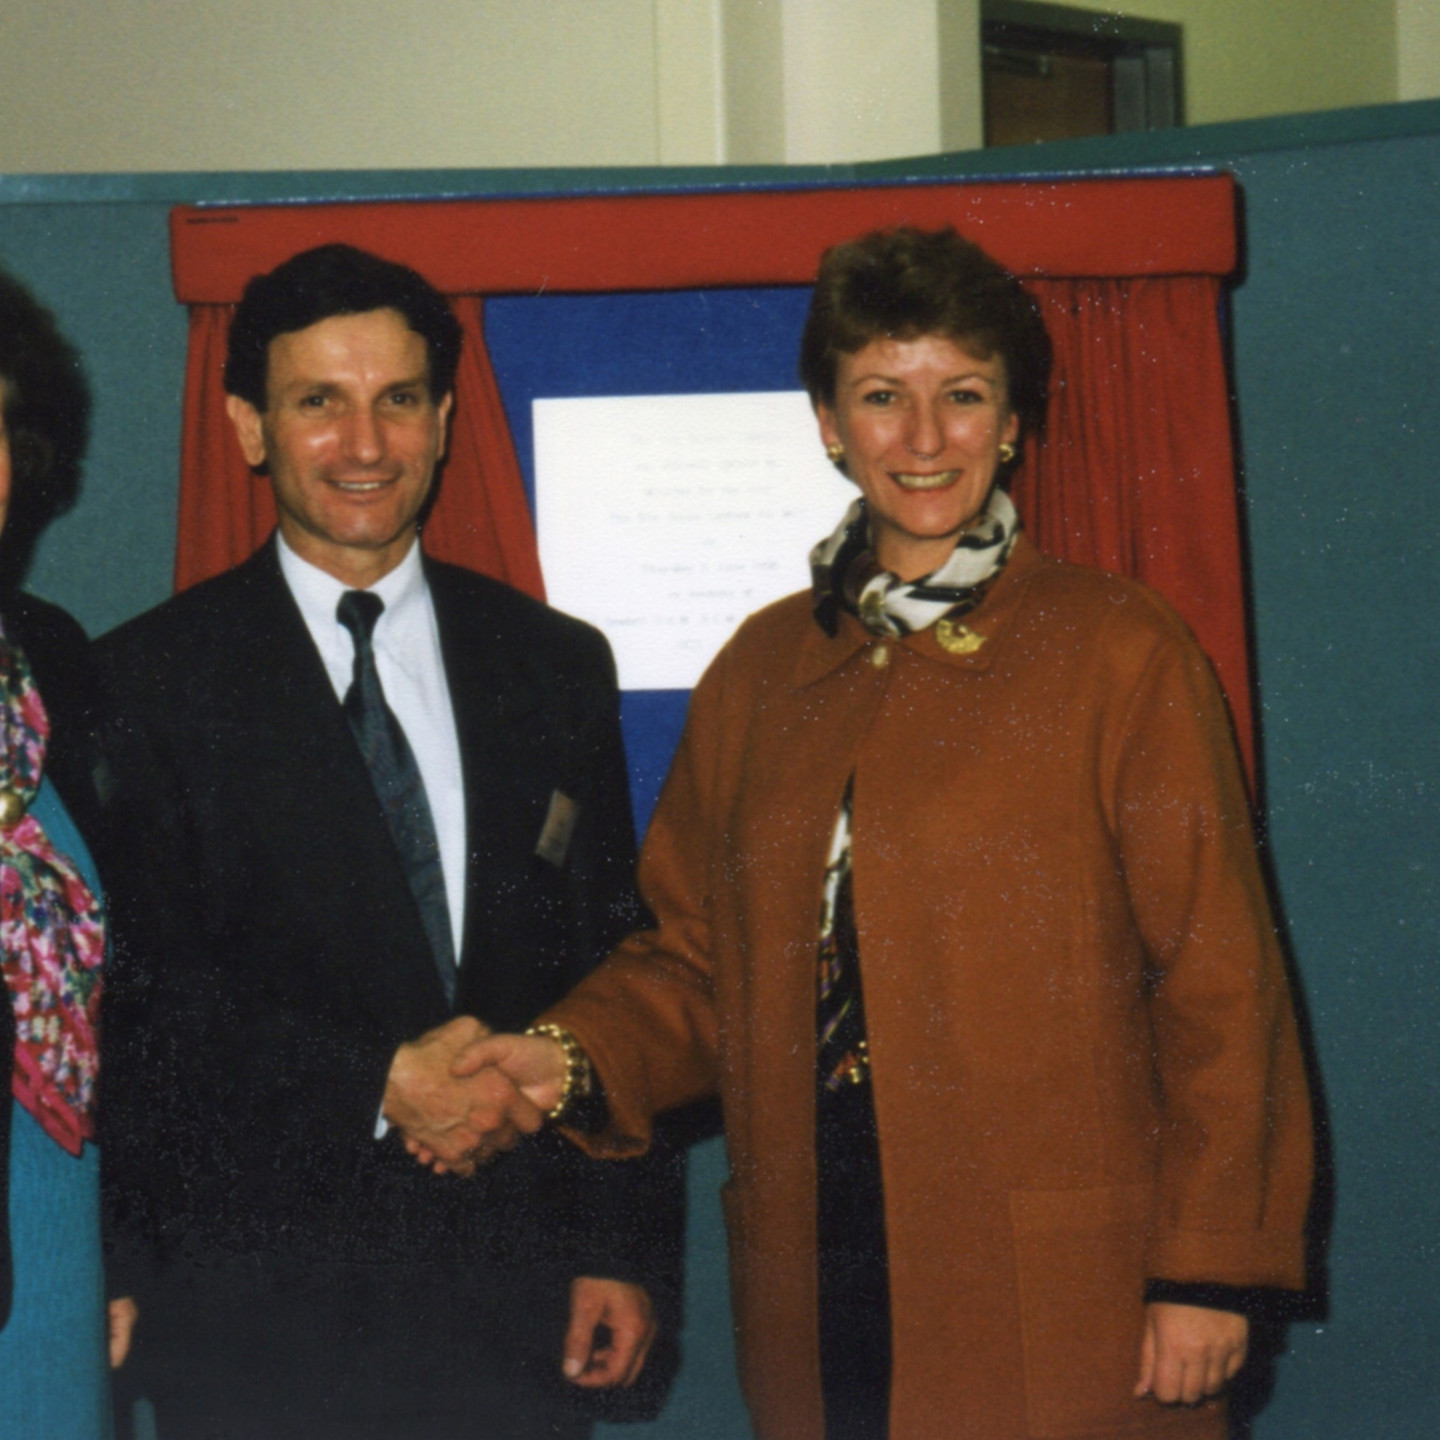 Anne Beadell, Tony Zappia, Diana Laidlaw at Opening 11 June 1998